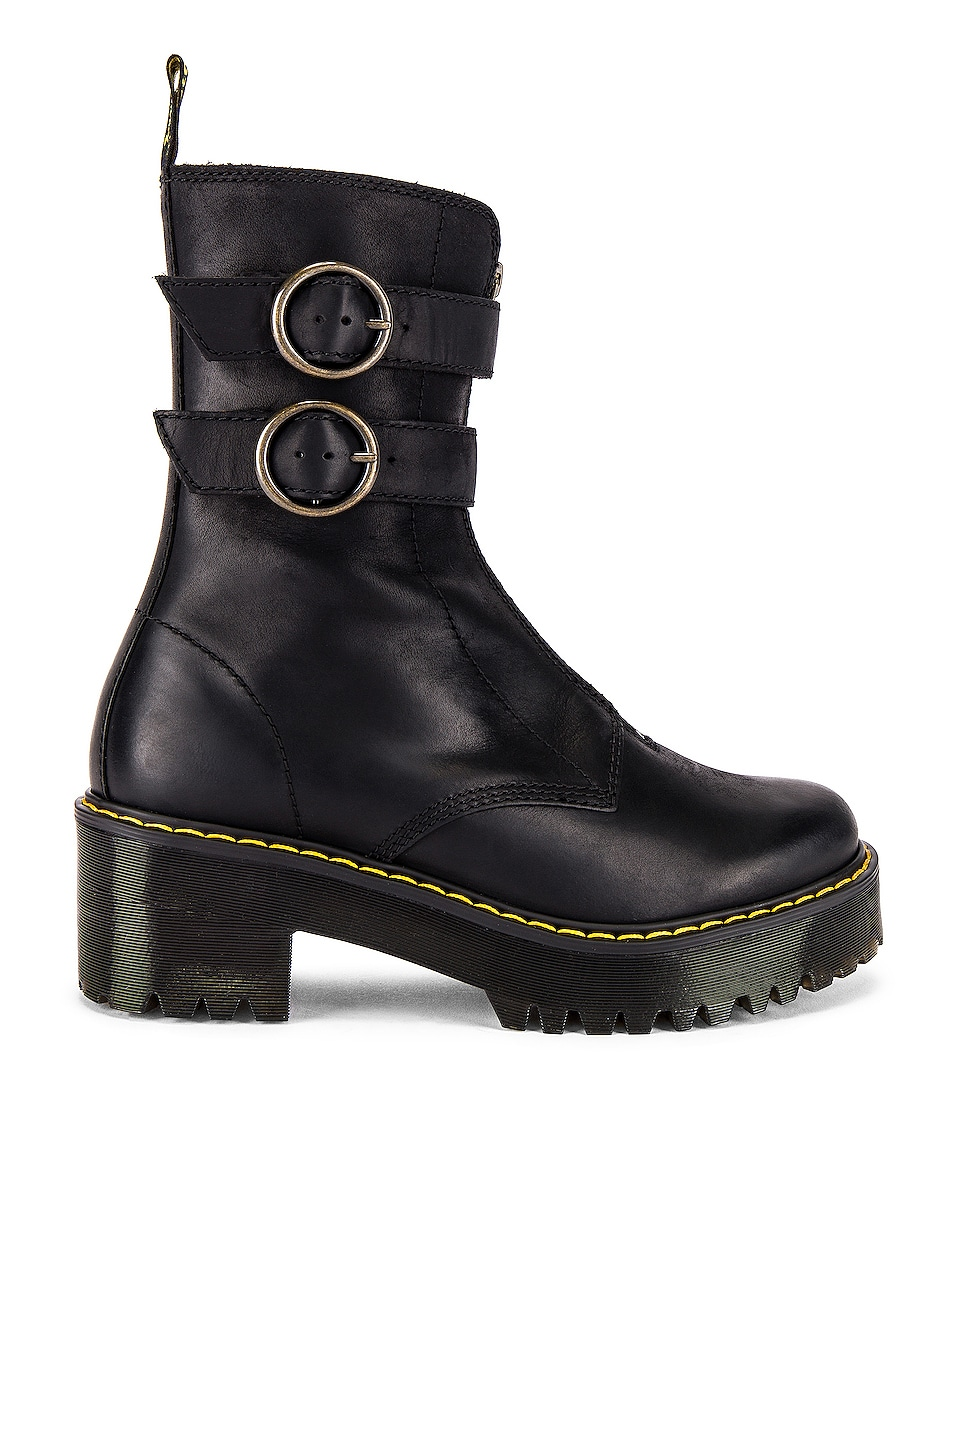 Save An Additional 30% Off Dr Martens Womens Dr.Martens New